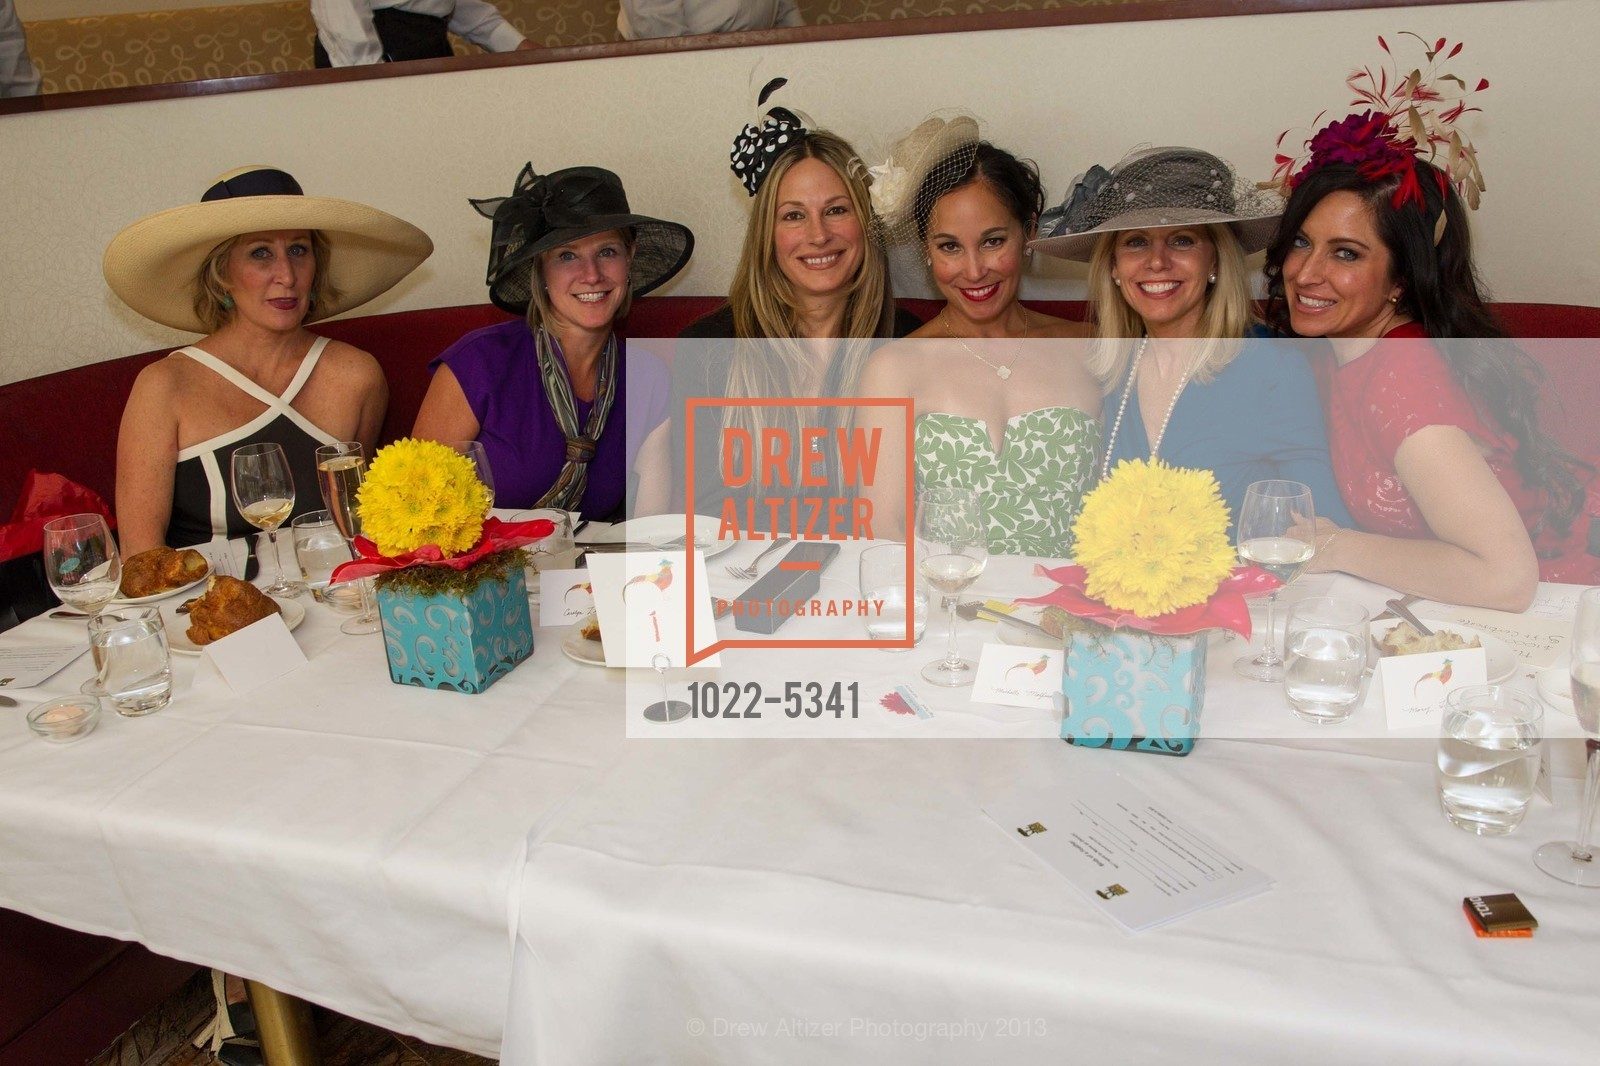 Lisa Keith, Carol Ann Weiss, Carolyne Zinko, Michelle Molfino, Corey Hyde, Photo #1022-5341